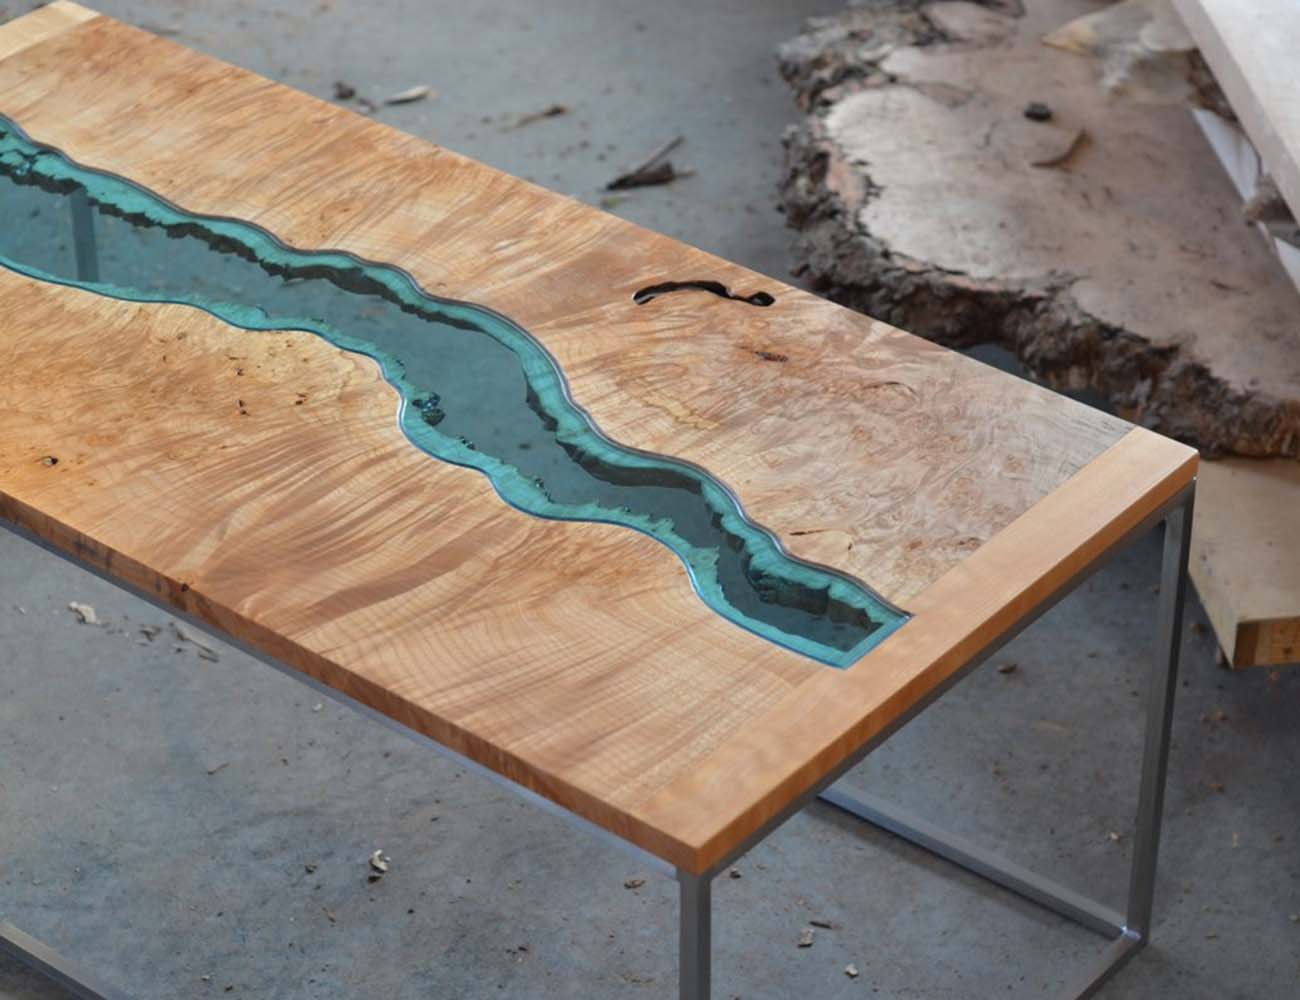 Burled River Coffee Table by Greg Klassen